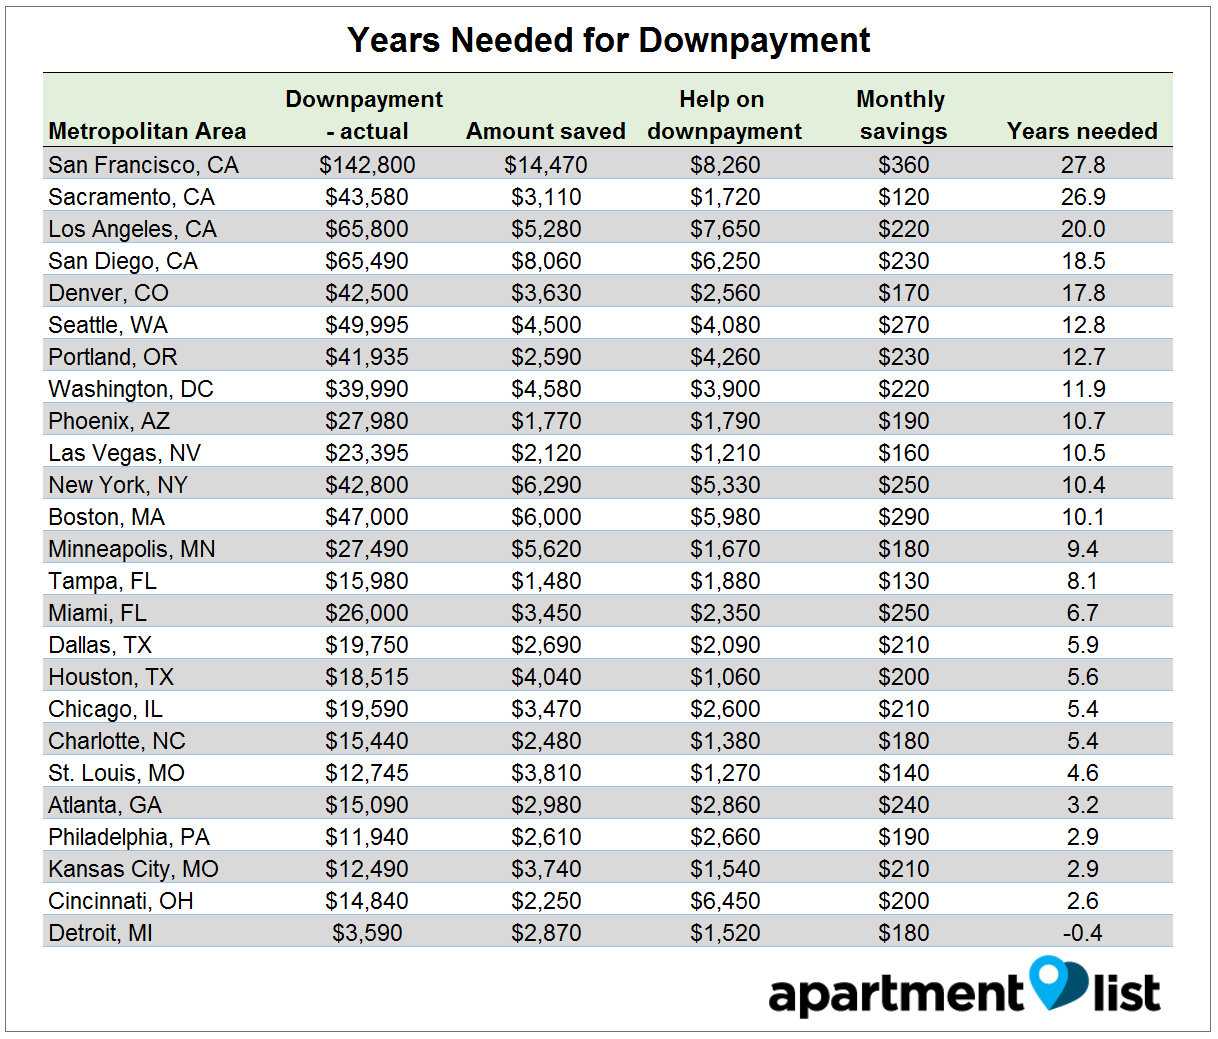 Millennials Need A Decade To Save For A Down Payment Says